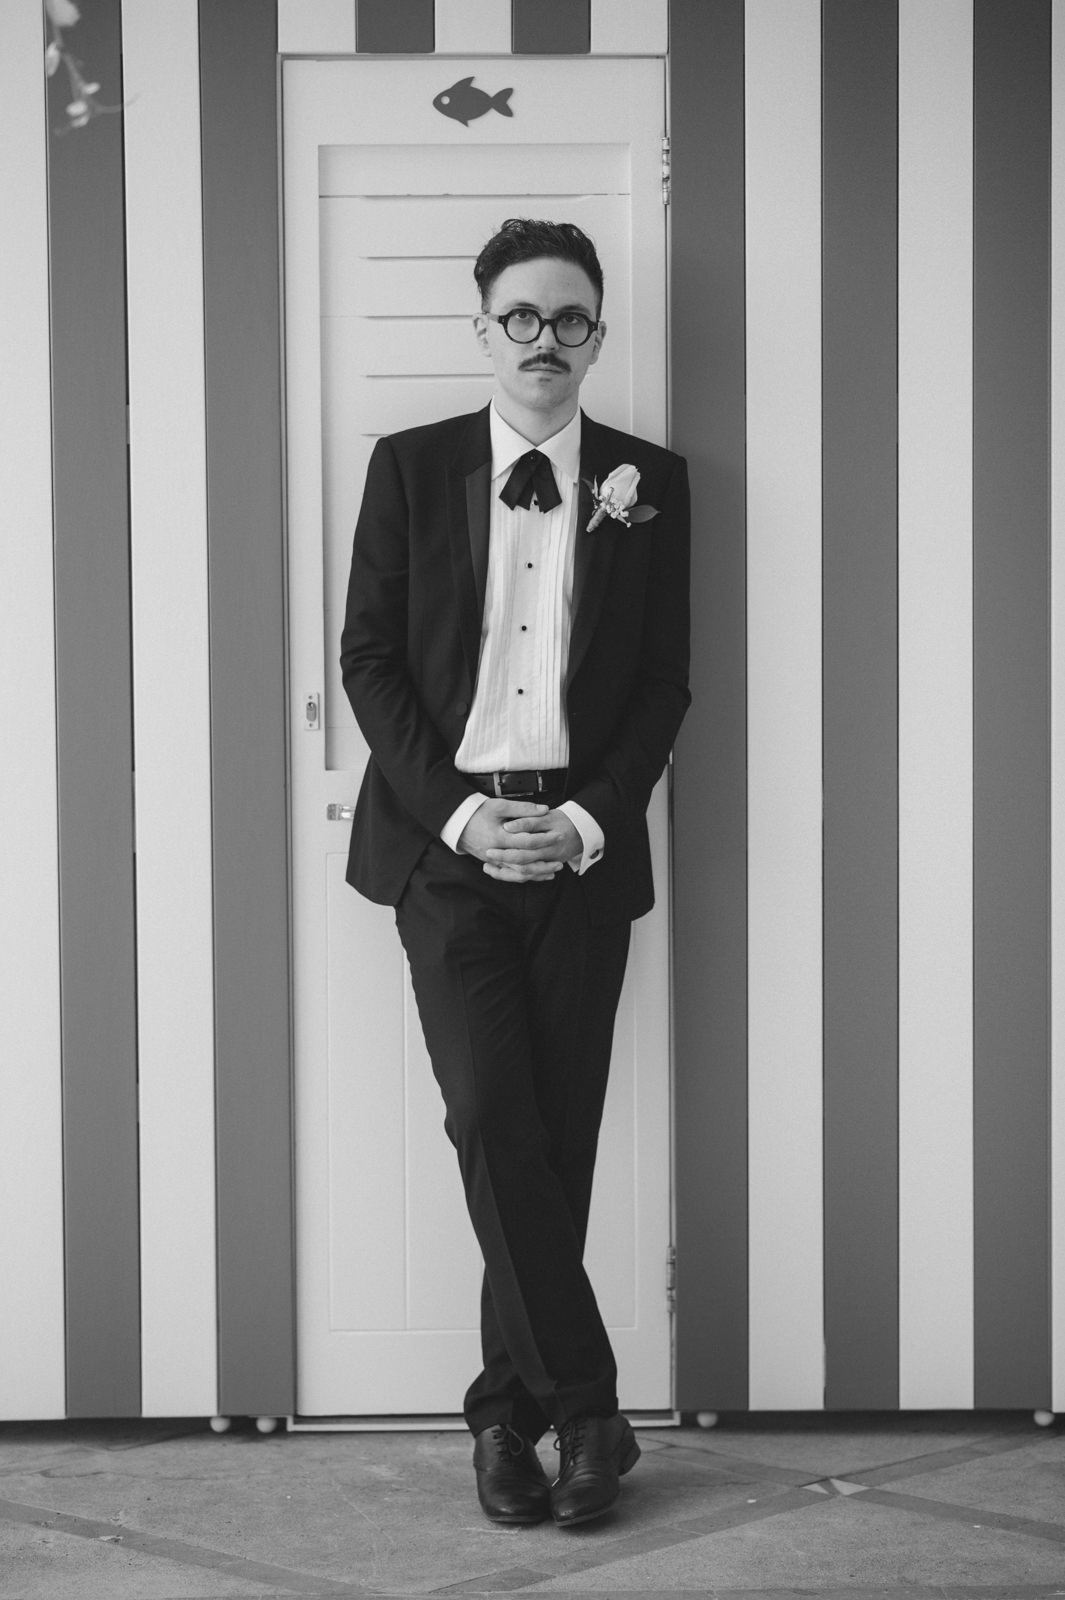 black and white portrait of the groom